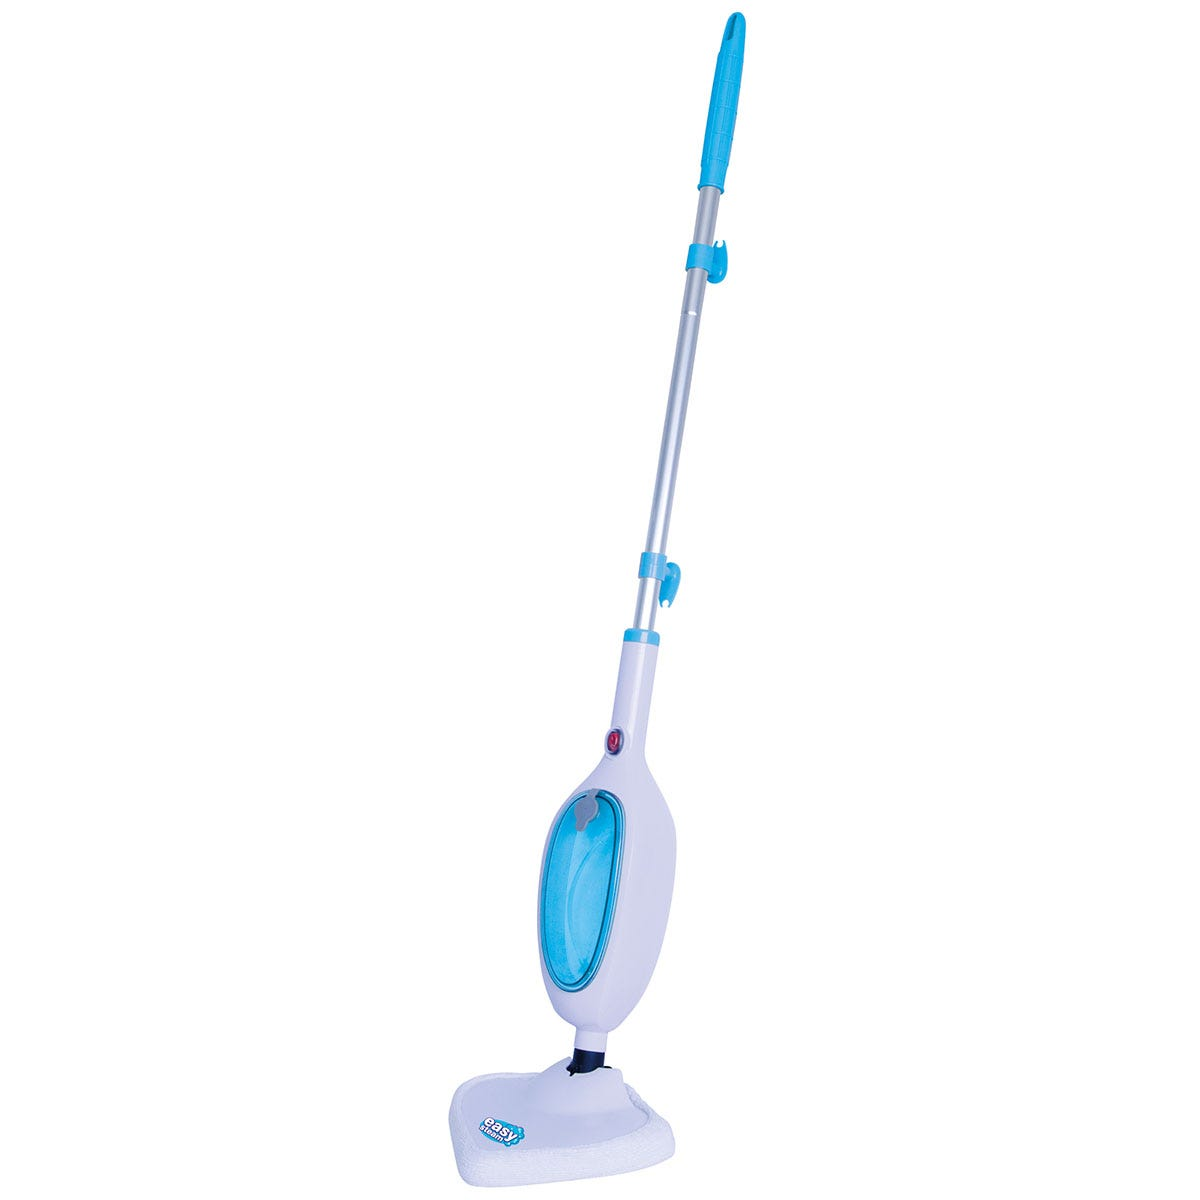 Easy Steam D7149 Upright Steam Mop 1300W Cleaner - White and Blue